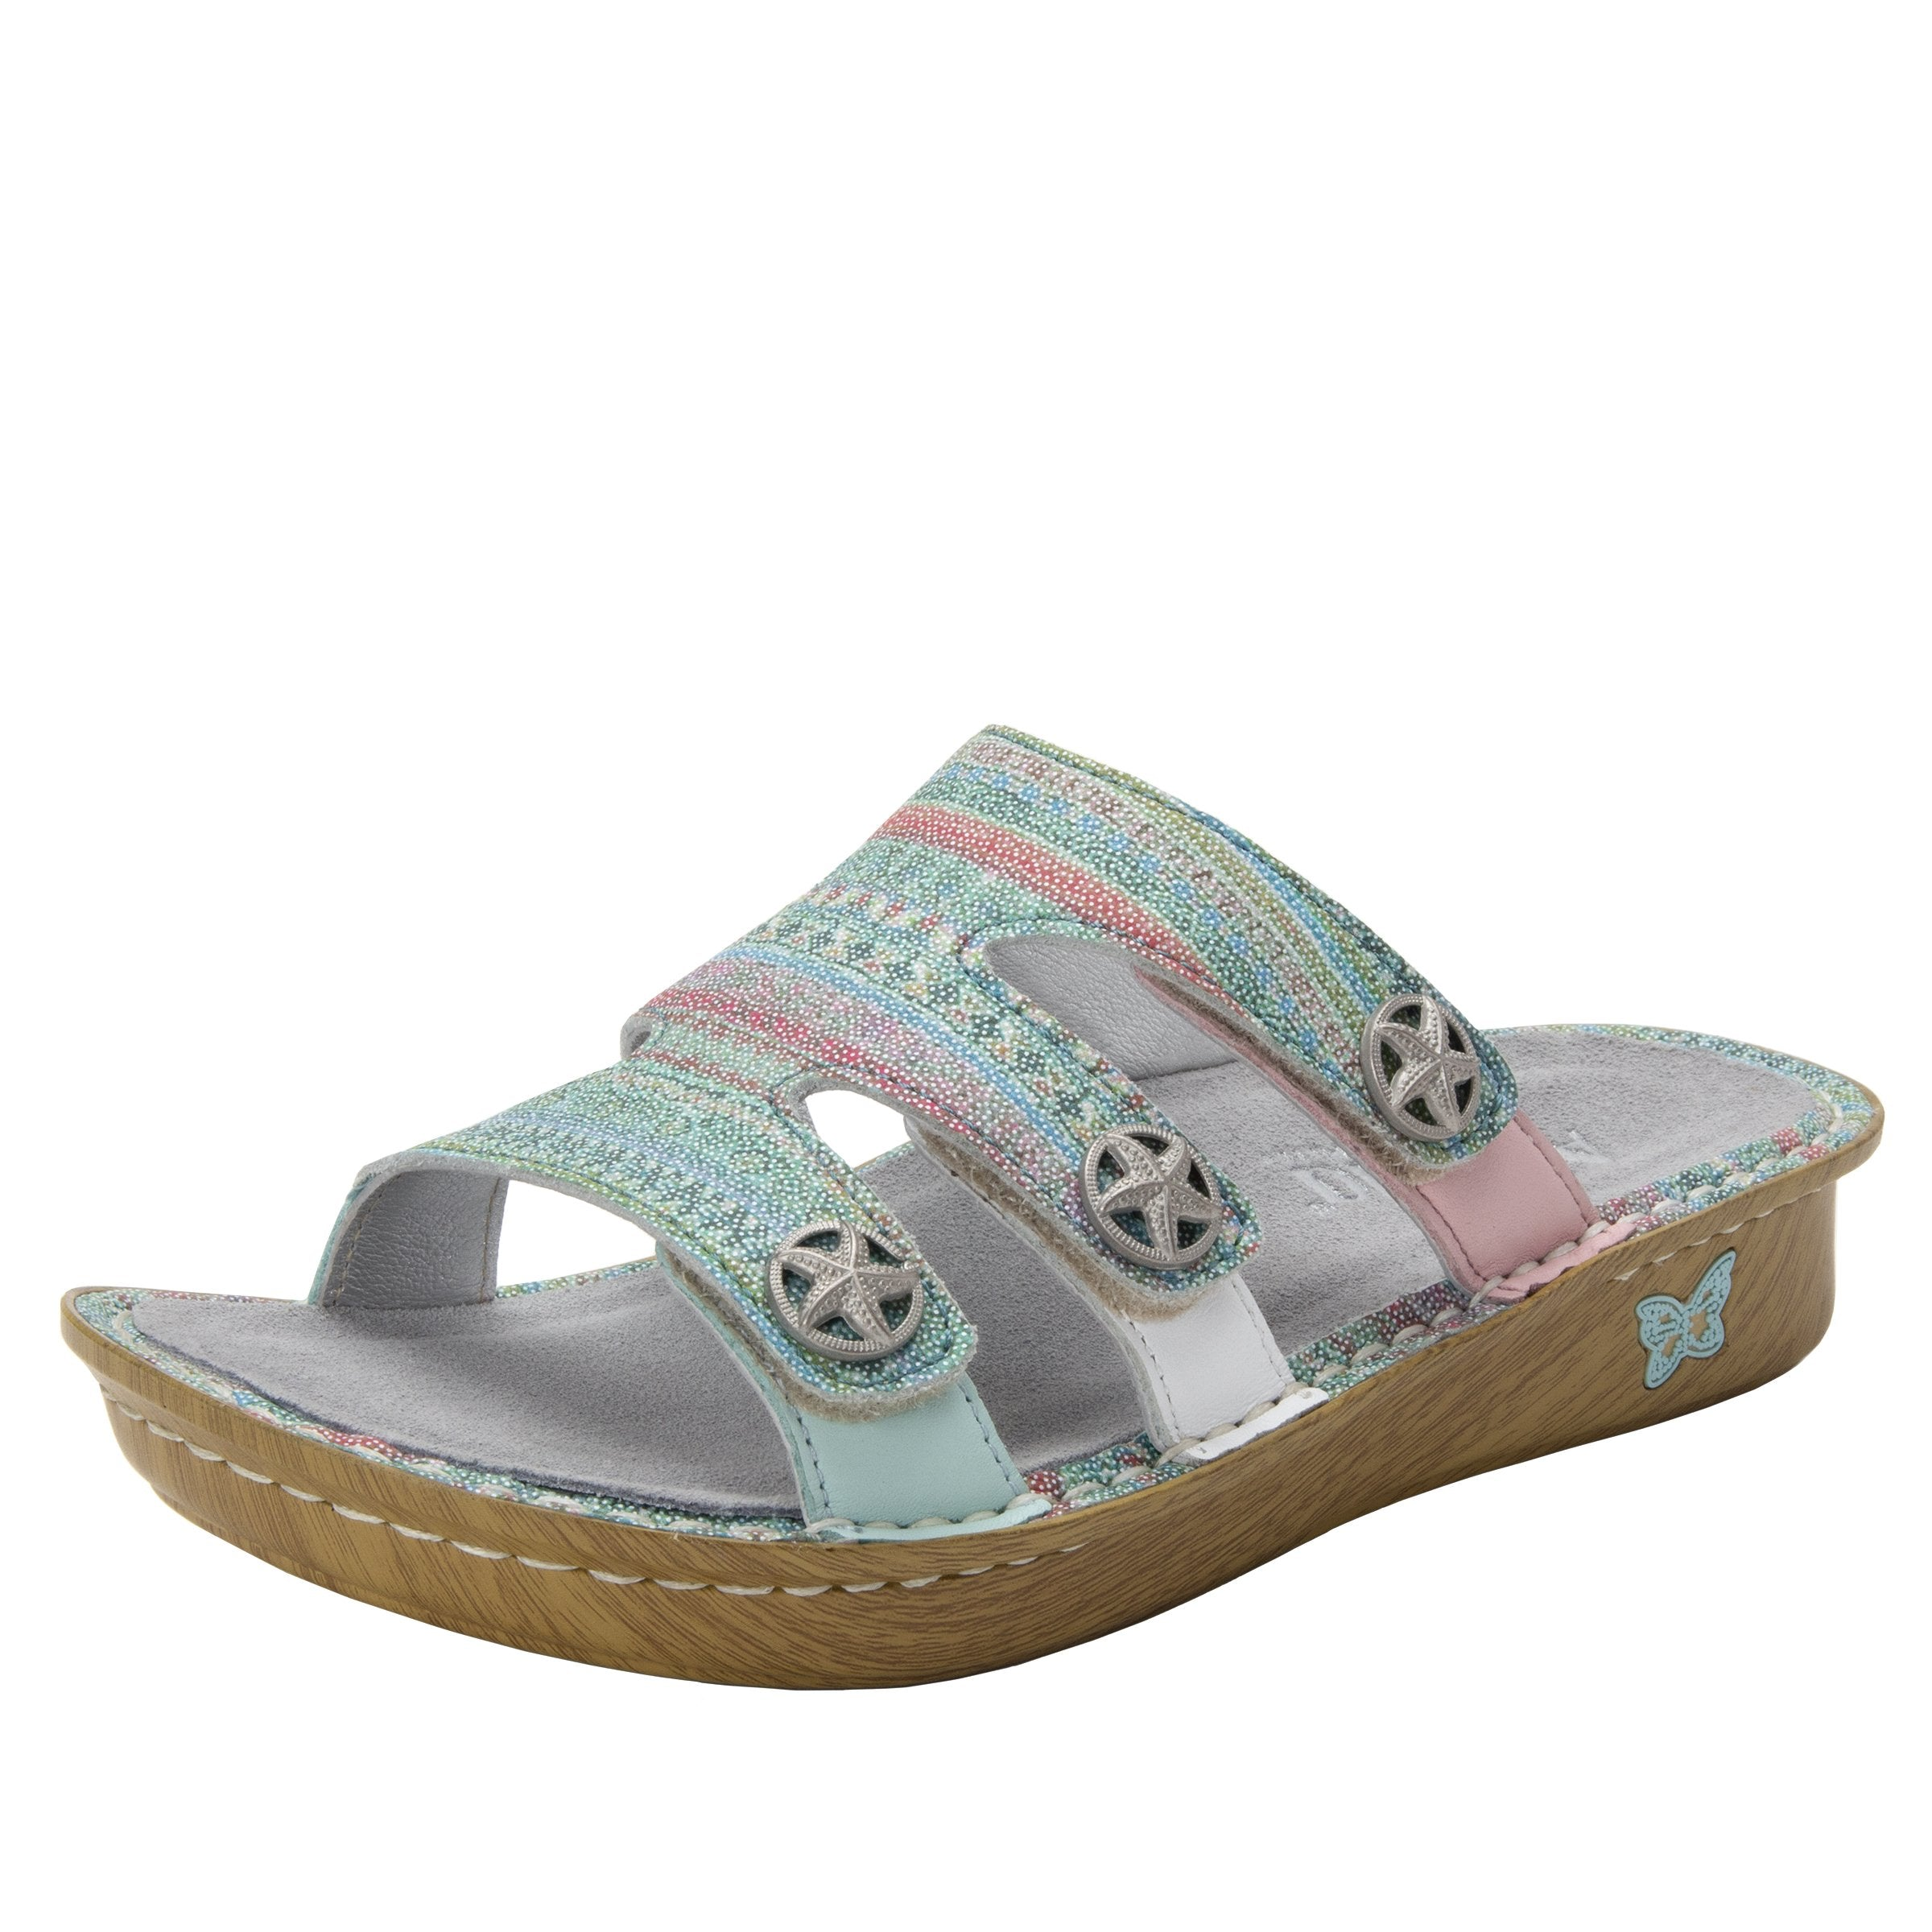 afcd262fdf29 Venice Seascape three strap adjustable slide sandal on mini bottom -  VEN-168 S1